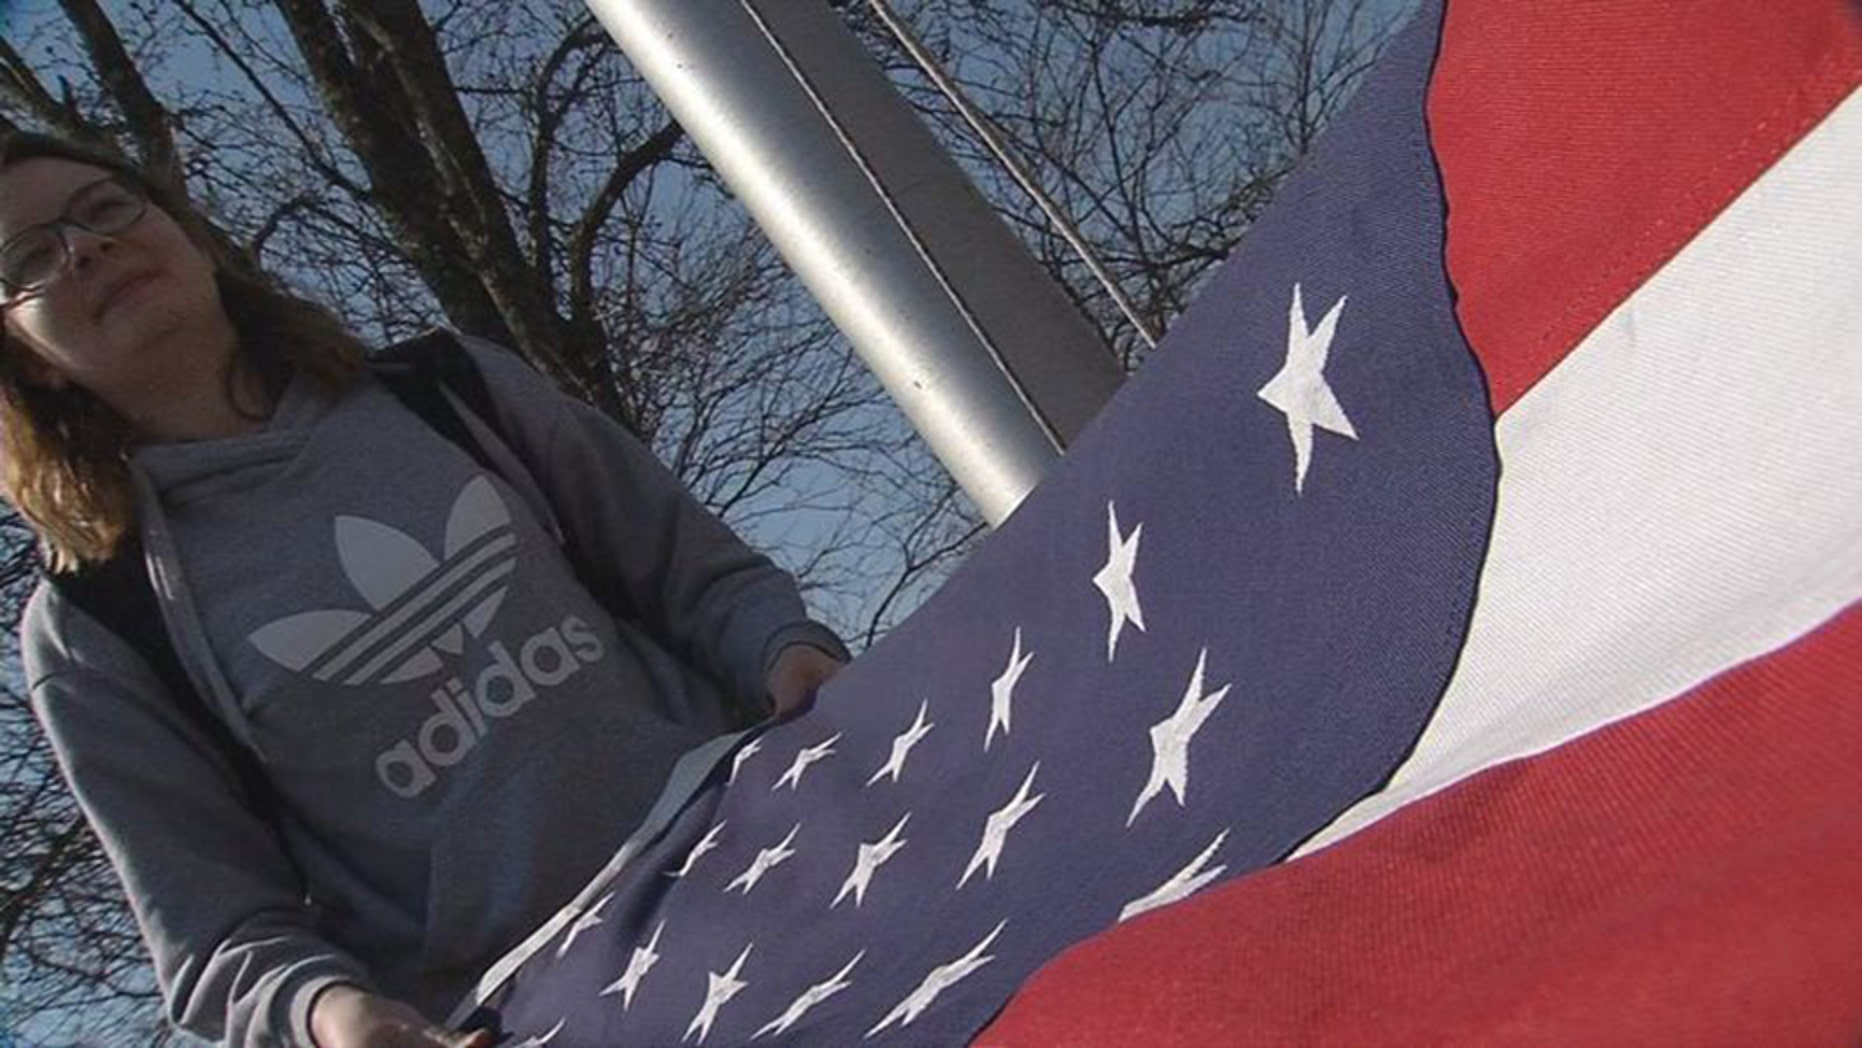 Cameron Carroll, a junior at South Oldham High School in Crestwood, Kentucky, is one of the students that tend to the stars and stripes every day after class. (WDRB Media)